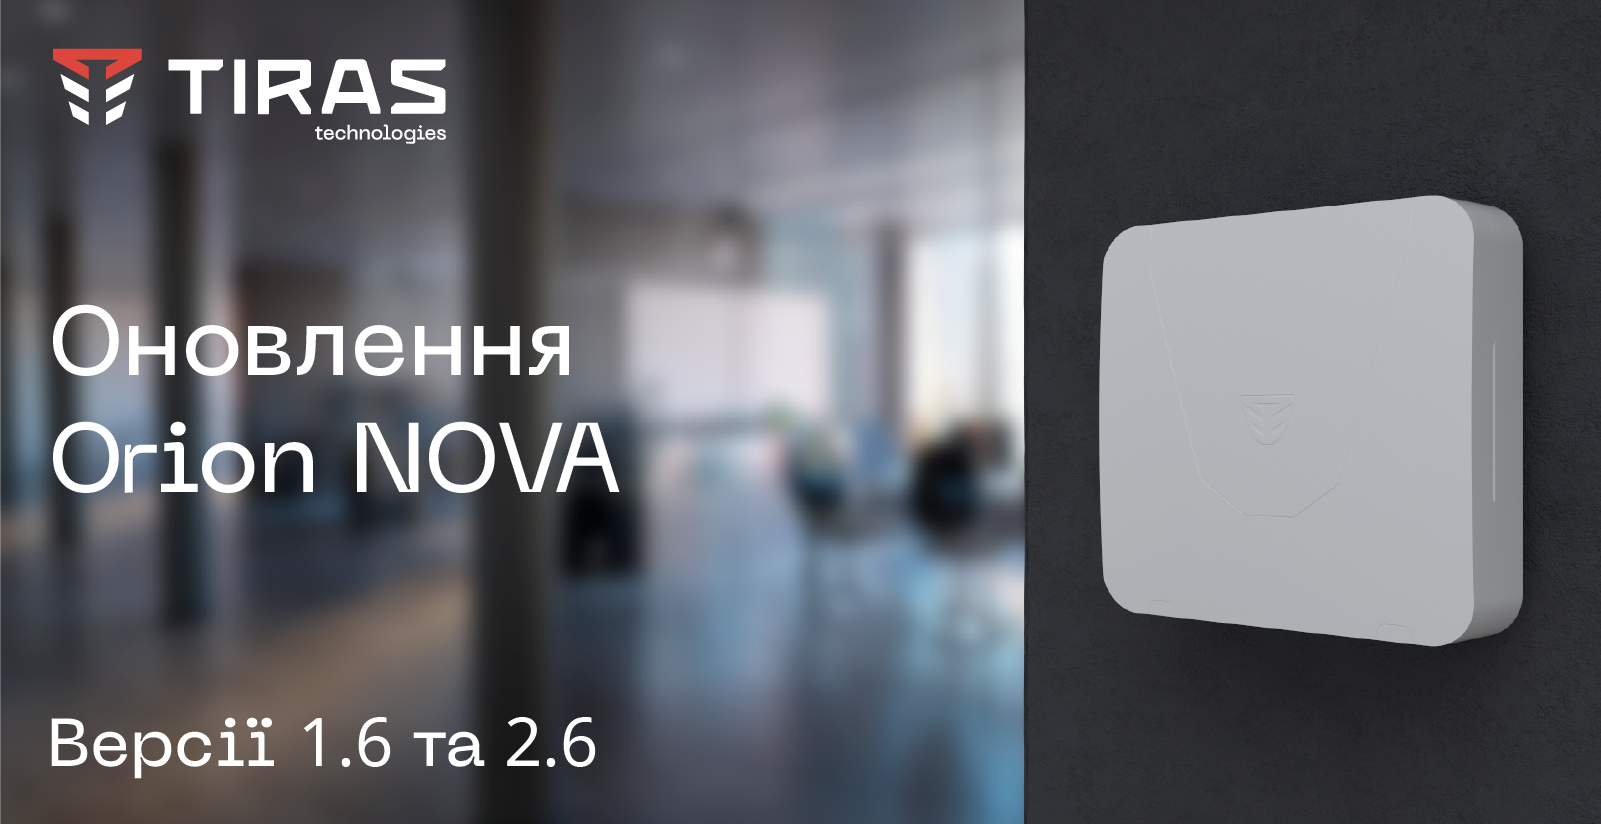 Orion NOVA update. Versions 1.6 and 2.6